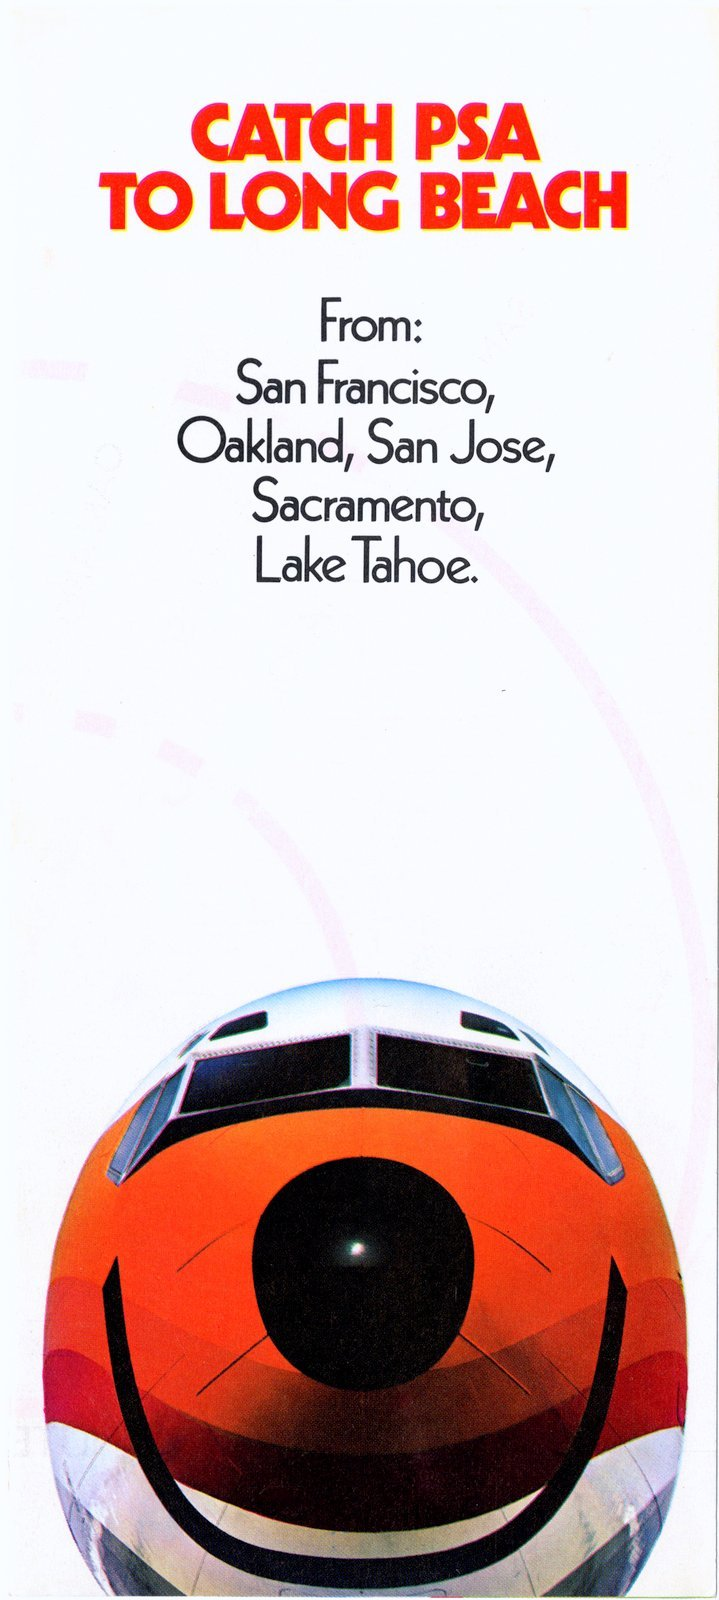 PSA to Long Beach - brochure from the 1970s